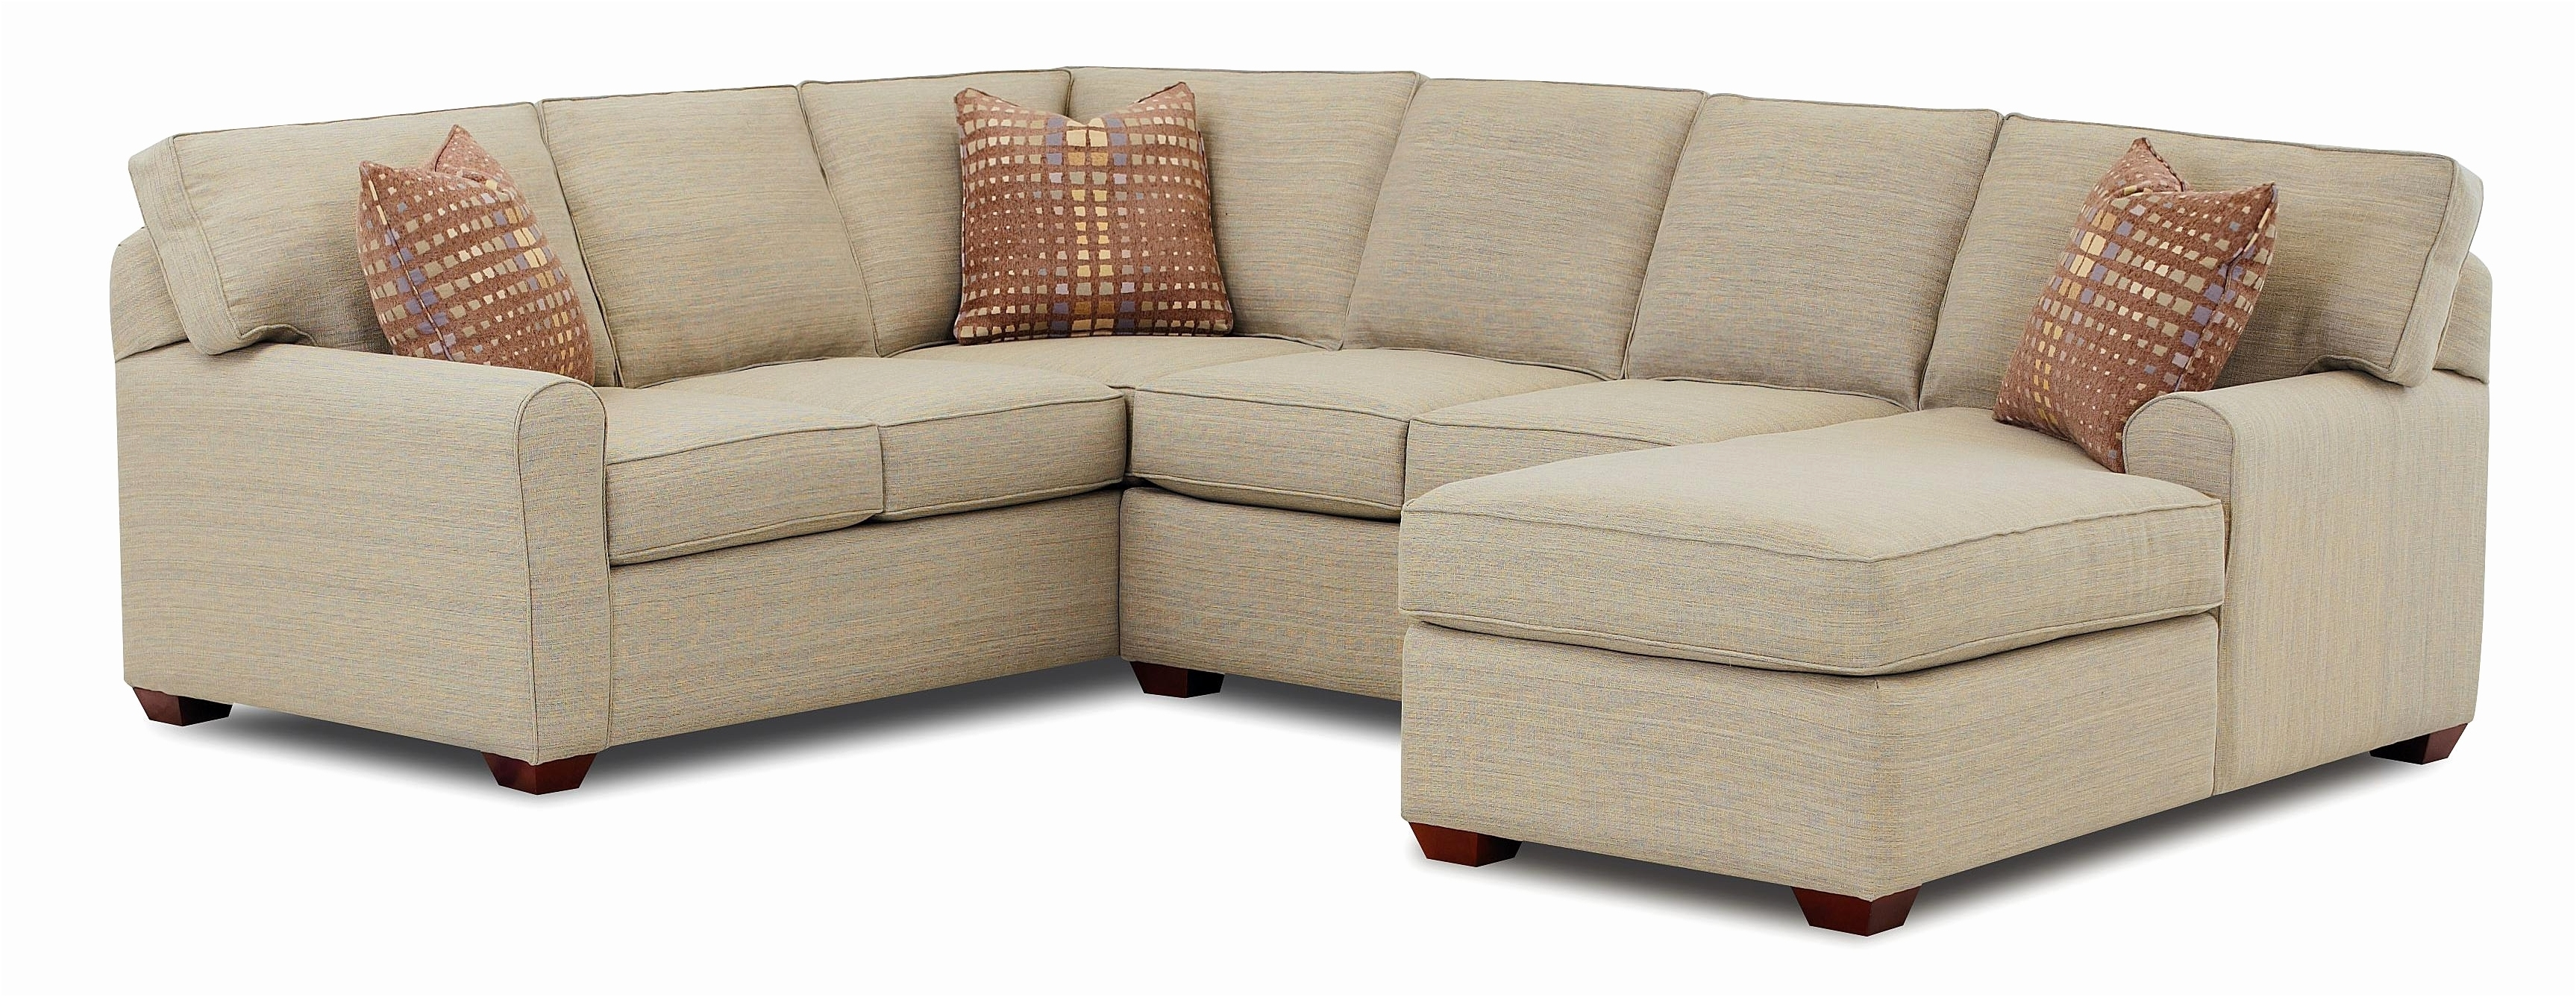 Favorite Lovely Chaise Sectional Sofa Beautiful – Sofa Furnitures Intended For Chaise Sofa Sectionals (View 10 of 15)